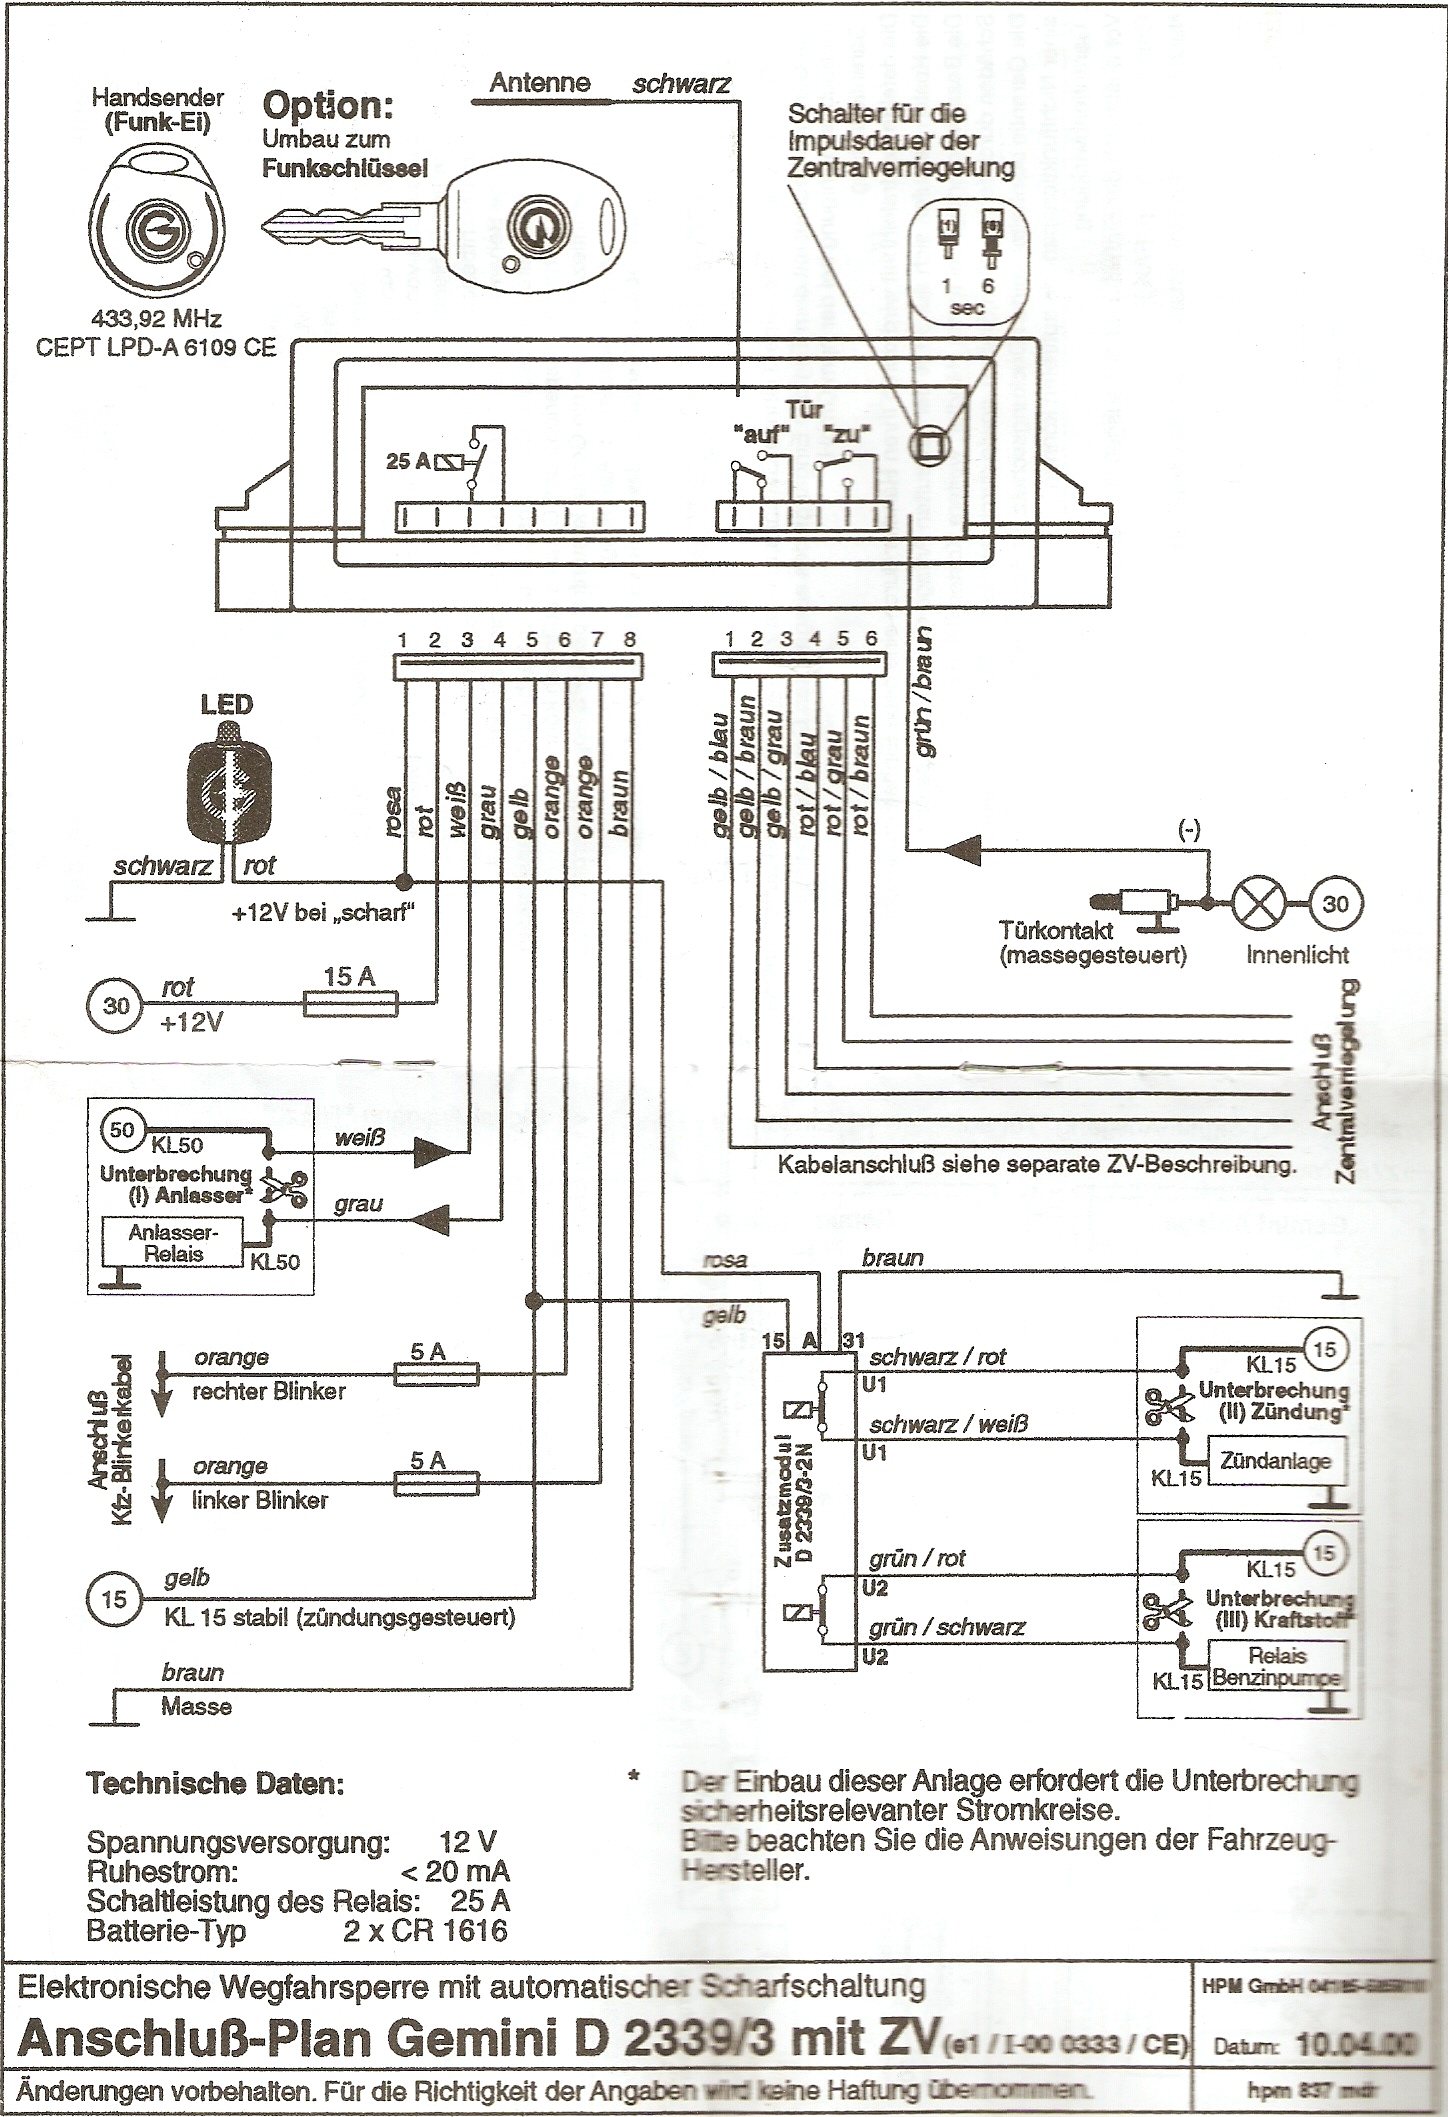 Viper Security System Wiring Diagram, Viper, Free Engine